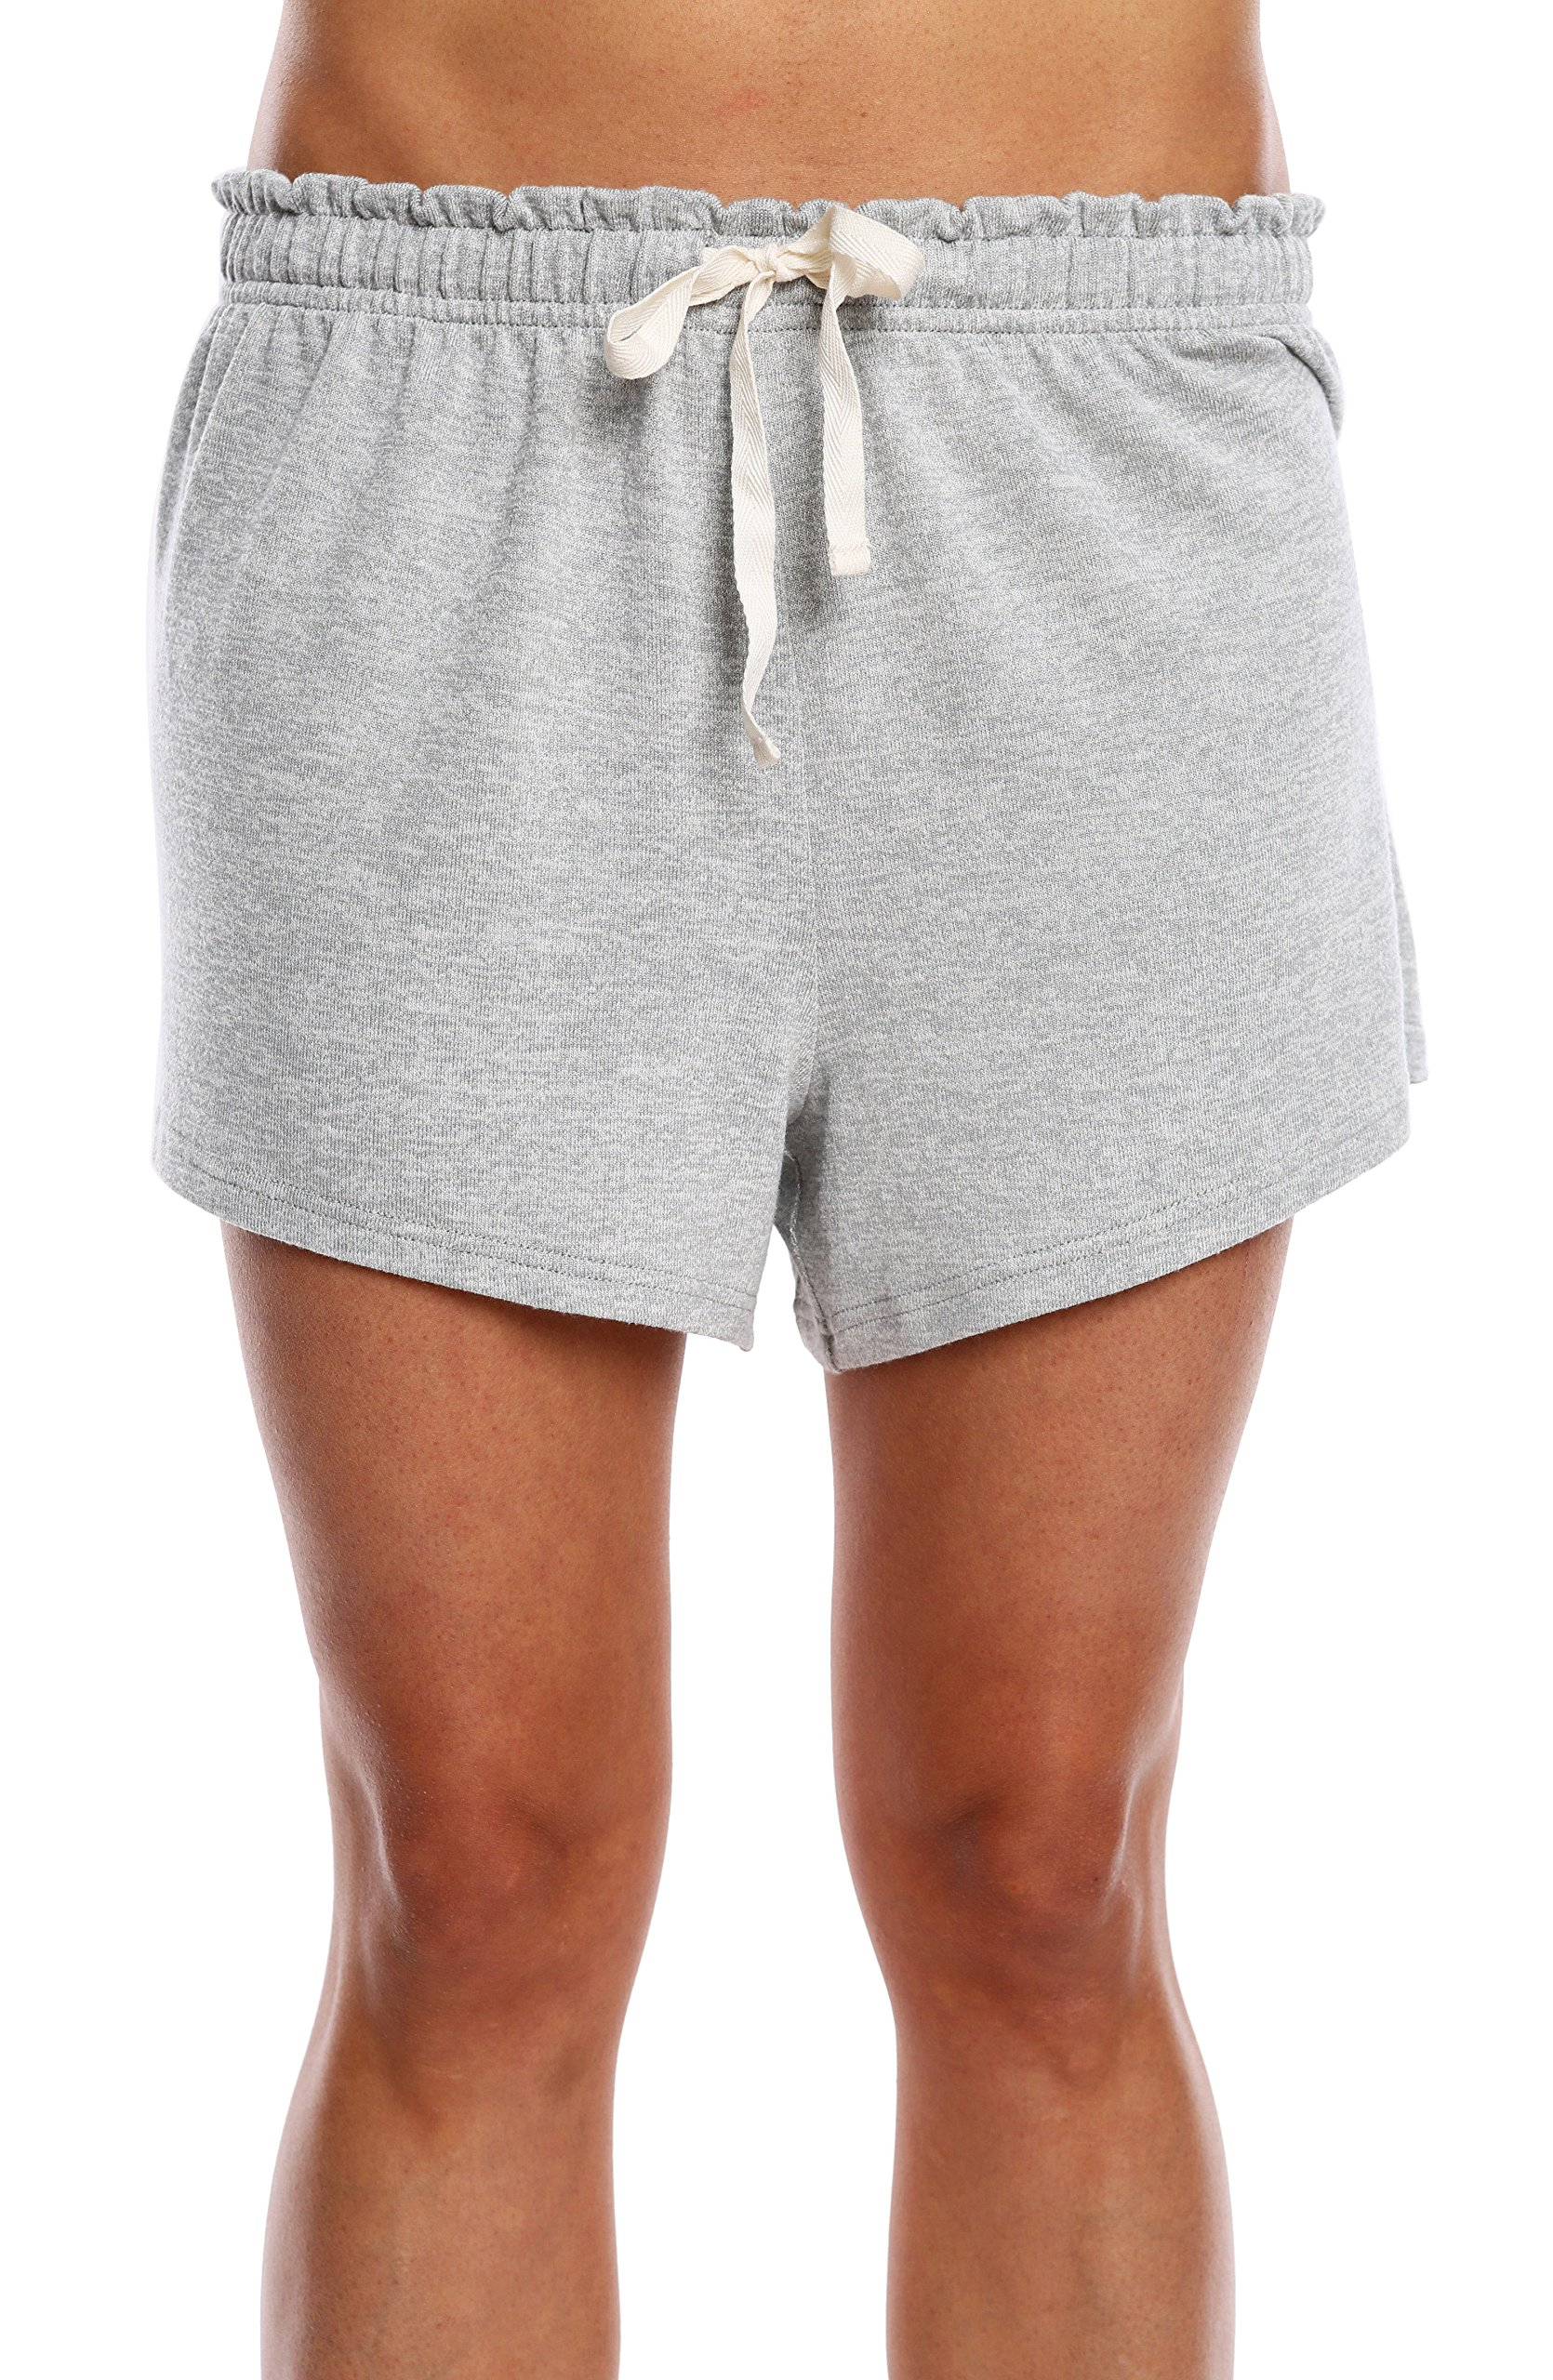 WallFlower Women's Solid Super Soft Hacci Lounge Sleep Short - Heather Grey, Large